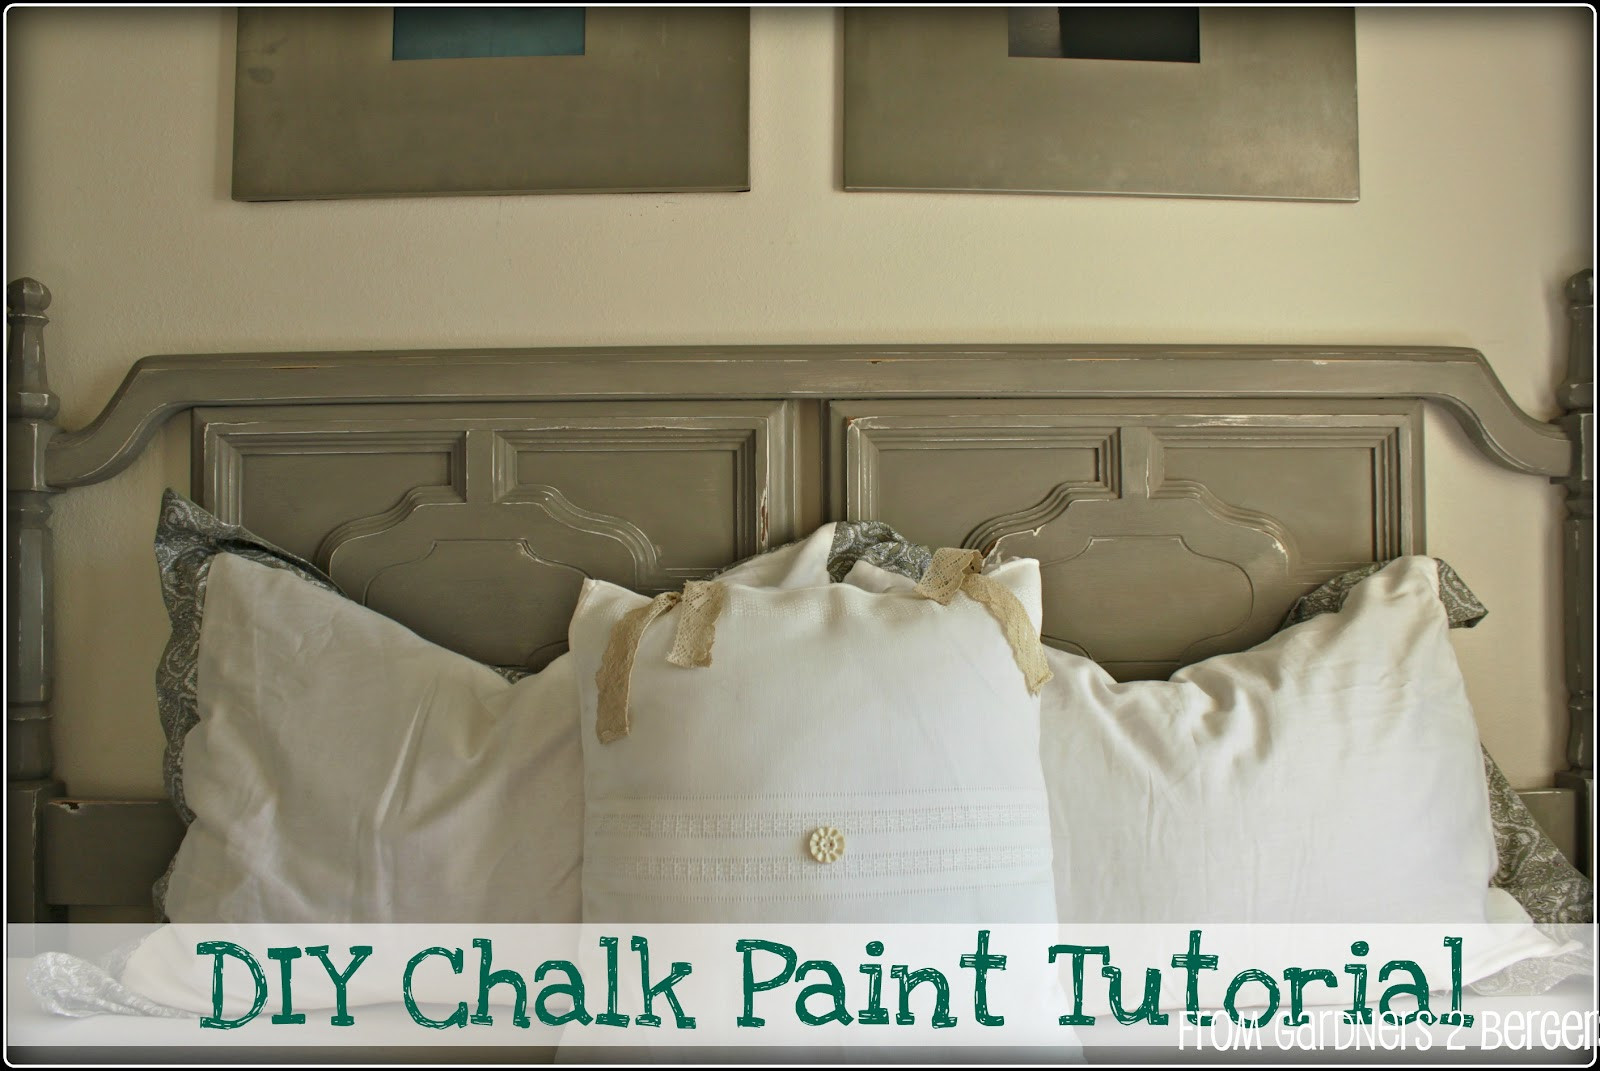 Best ideas about Chalk Paint DIY . Save or Pin from Gardners 2 Bergers DIY Chalk Paint tutorial Now.